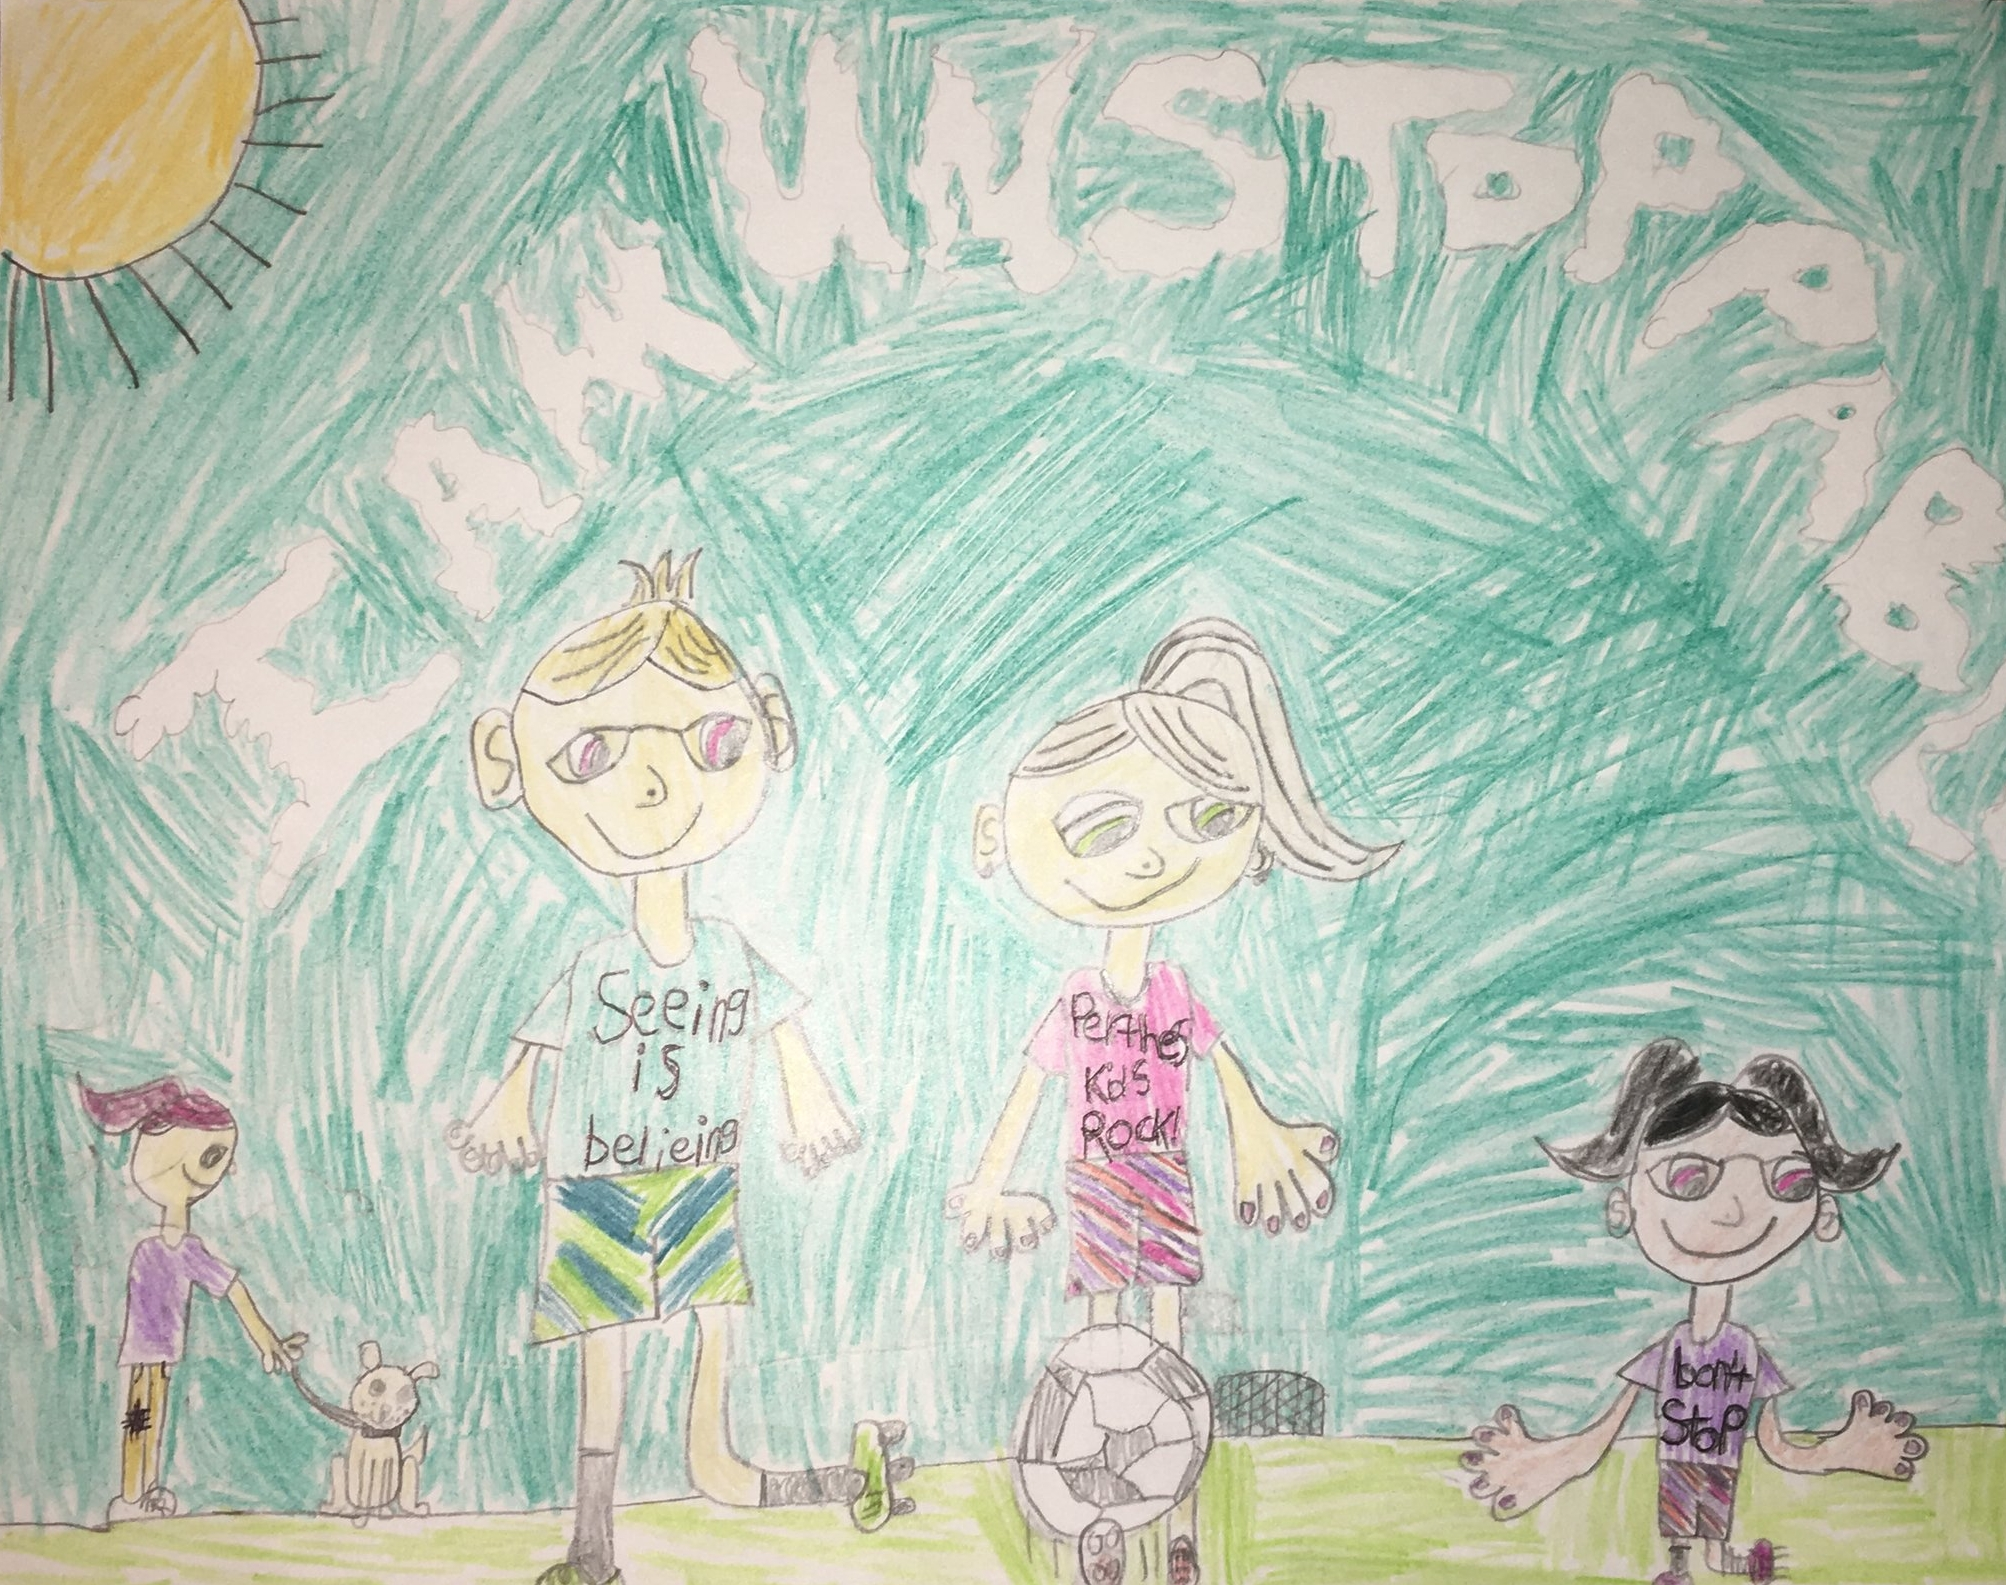 007 - I AM UNSTOPPABLE by Paisley Abbott (age 9) in Radford, Virginia, USA